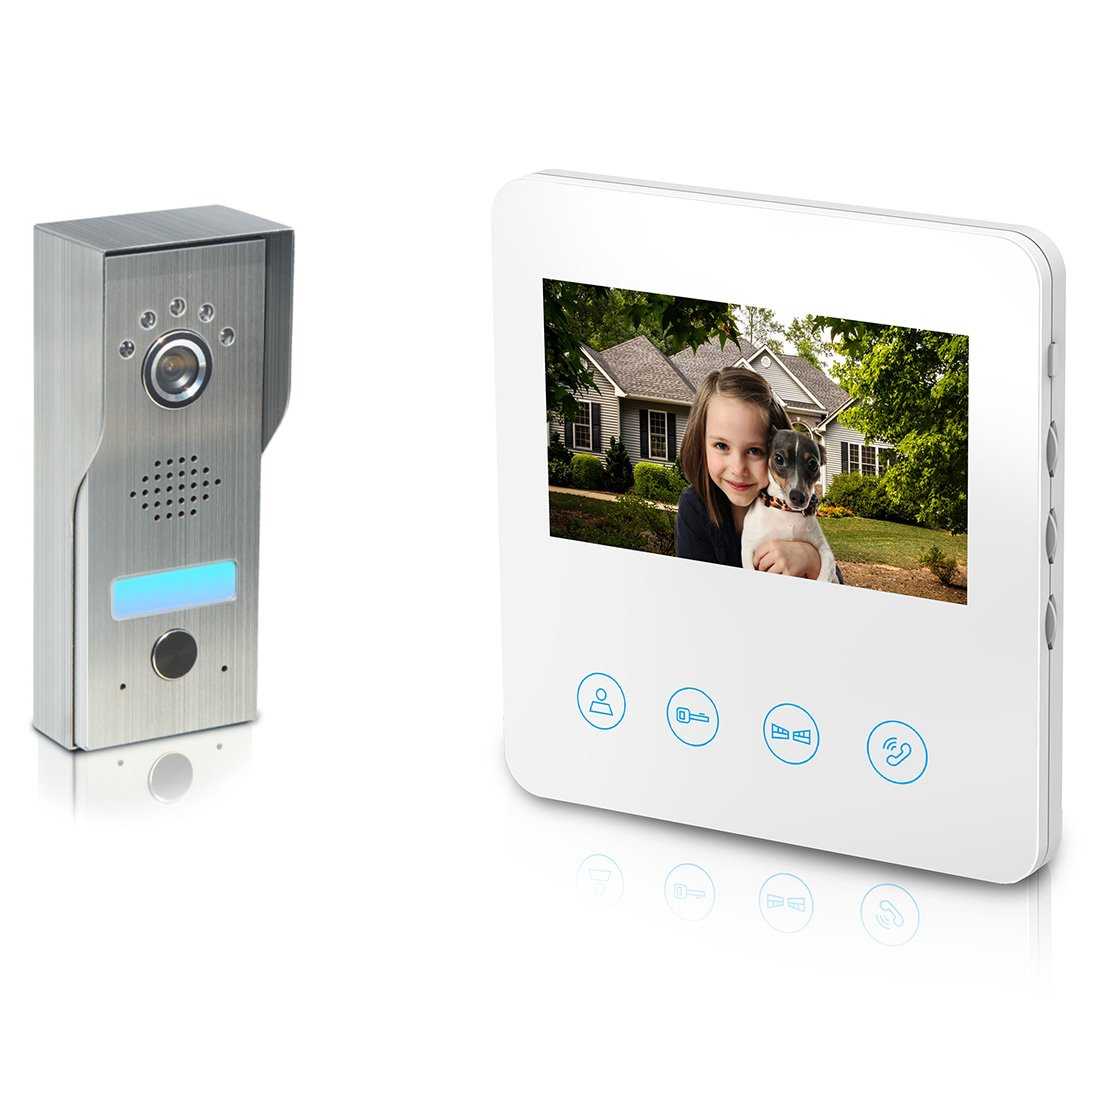 Video Doorbell 4.3inch Monitor - Stainless Steel Camera 4-wires IP44 water-proof Video Door Phone Intercom Kit 1-camera 1-monitor Night Vision Touch Button Color Screen - No Wi-Fi & APP White